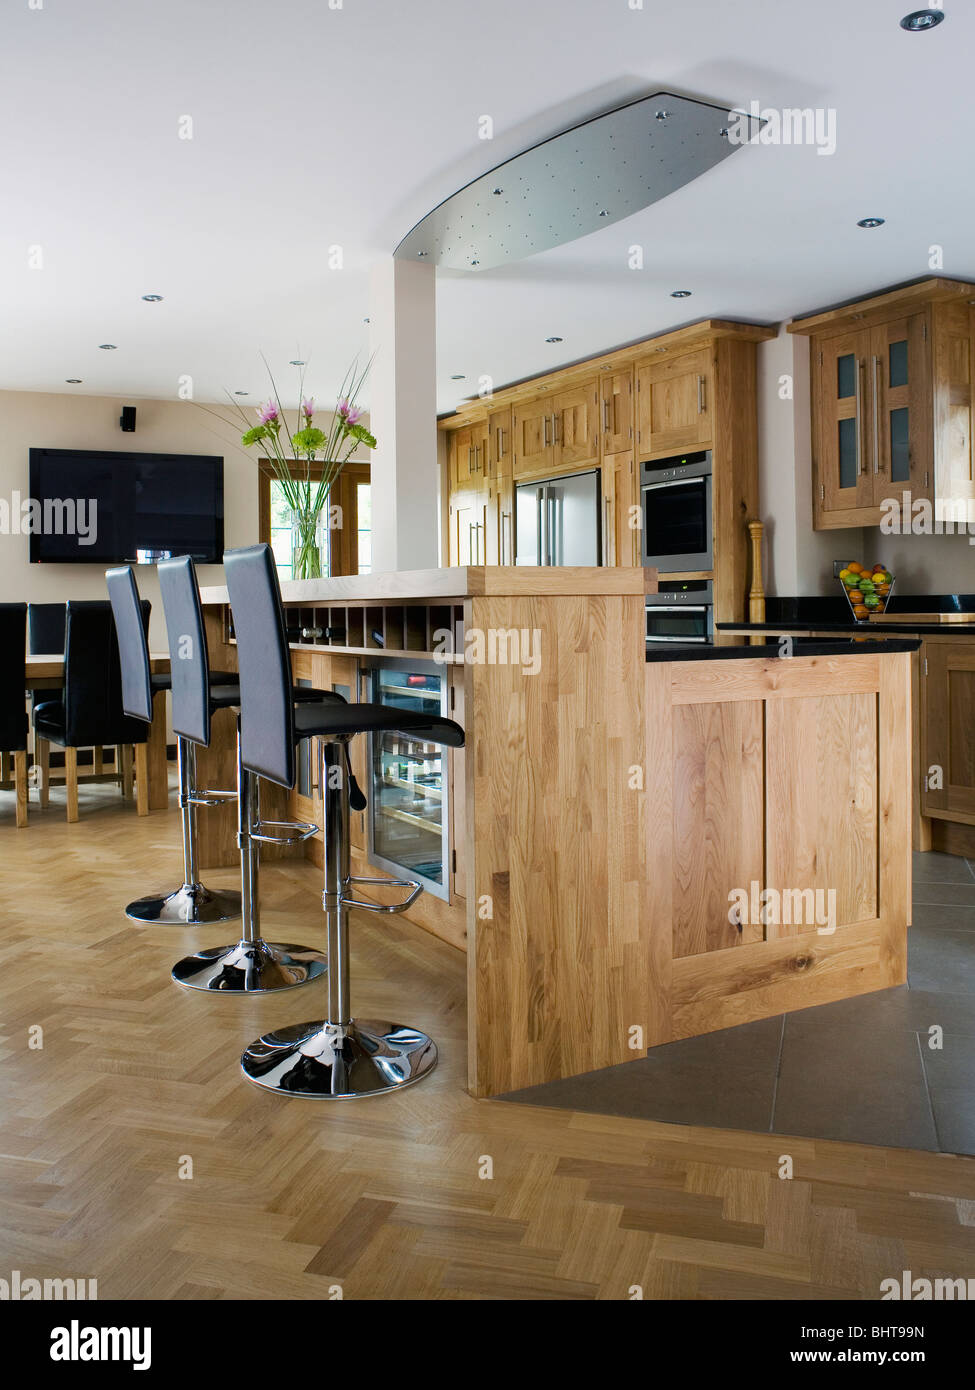 Fabulous Black Stools At Breakfast Bar In Modern Country Kitchen With Andrewgaddart Wooden Chair Designs For Living Room Andrewgaddartcom